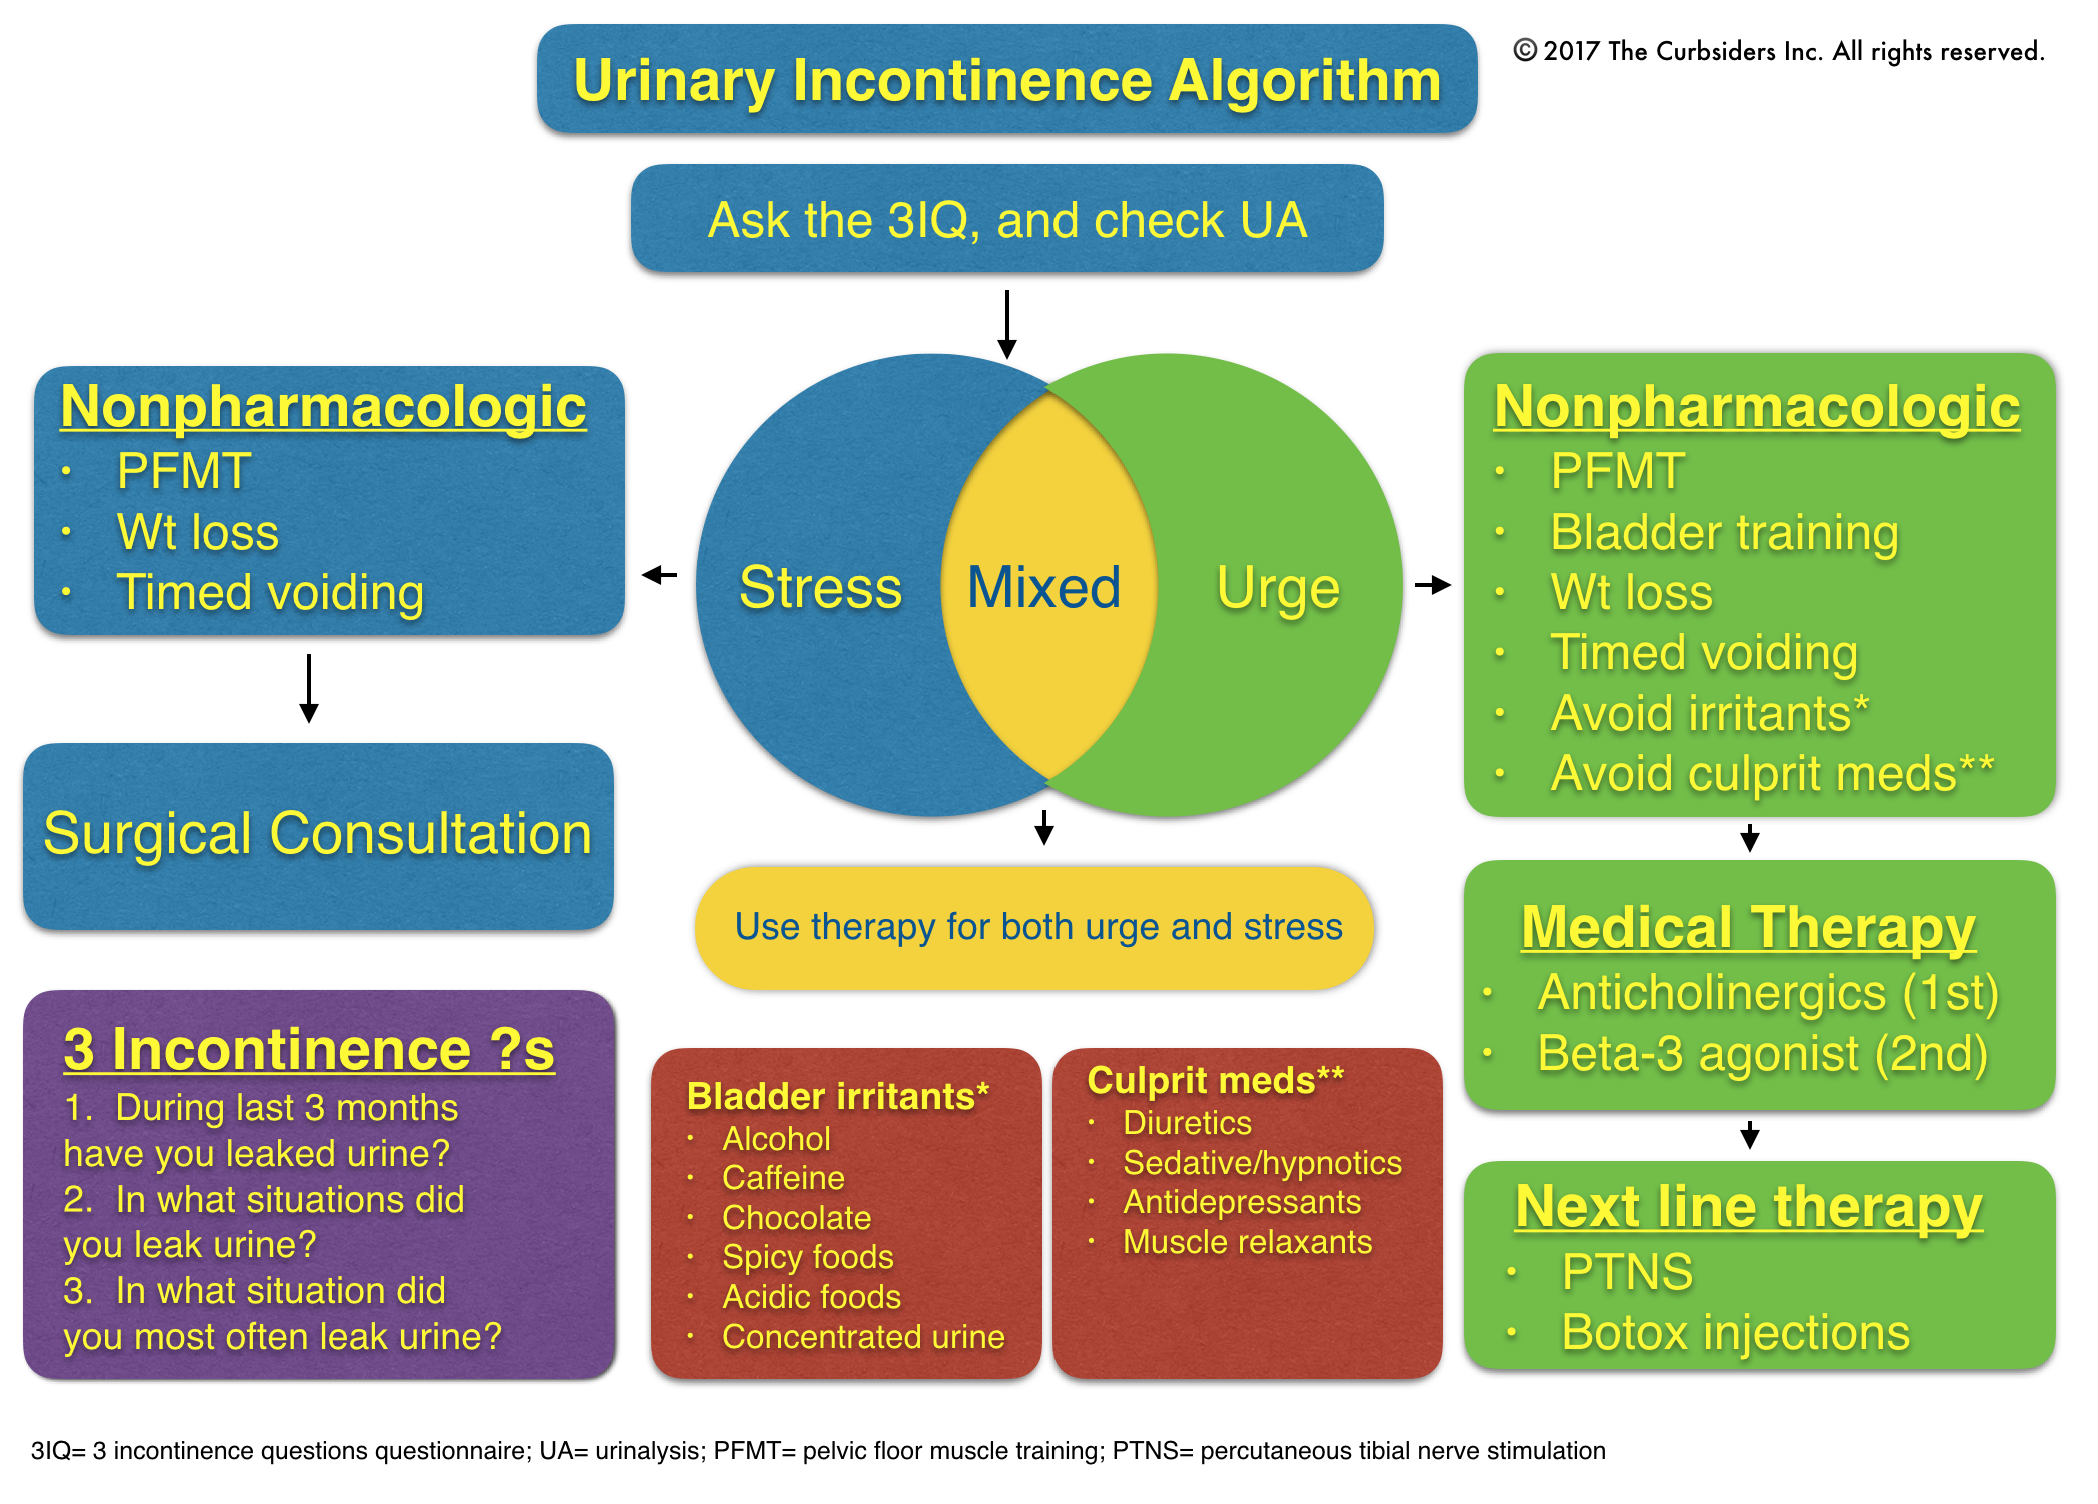 Urinary Incontinence Algorithm 3IQ Questionnaire: Helps